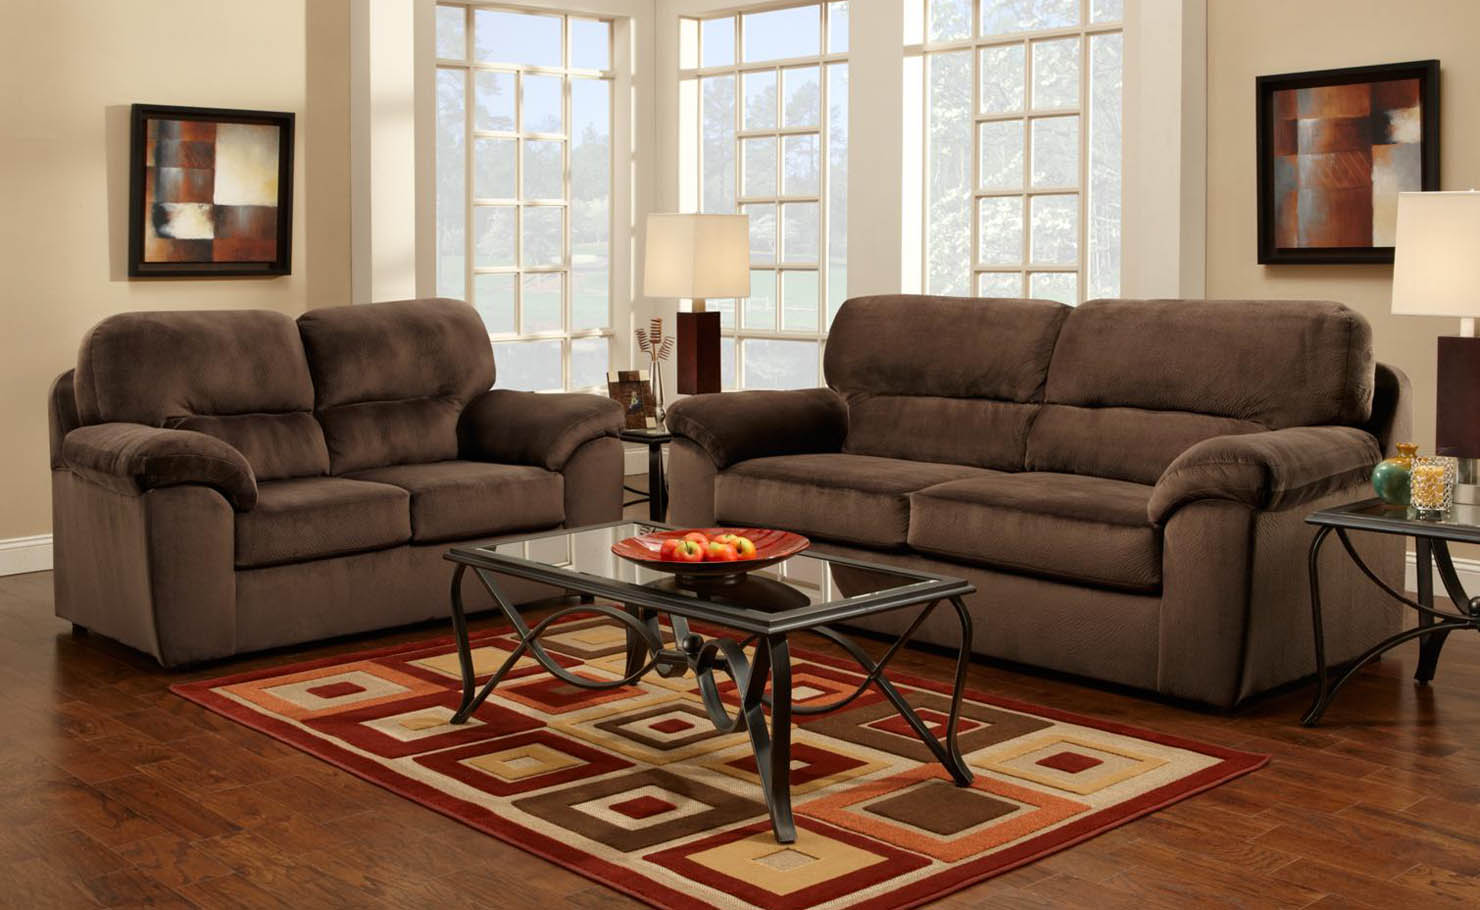 Chelsea Home Baltimore Fabric Sofa And Loveseat Set In Chocolate Brown 194800 S L Sofas